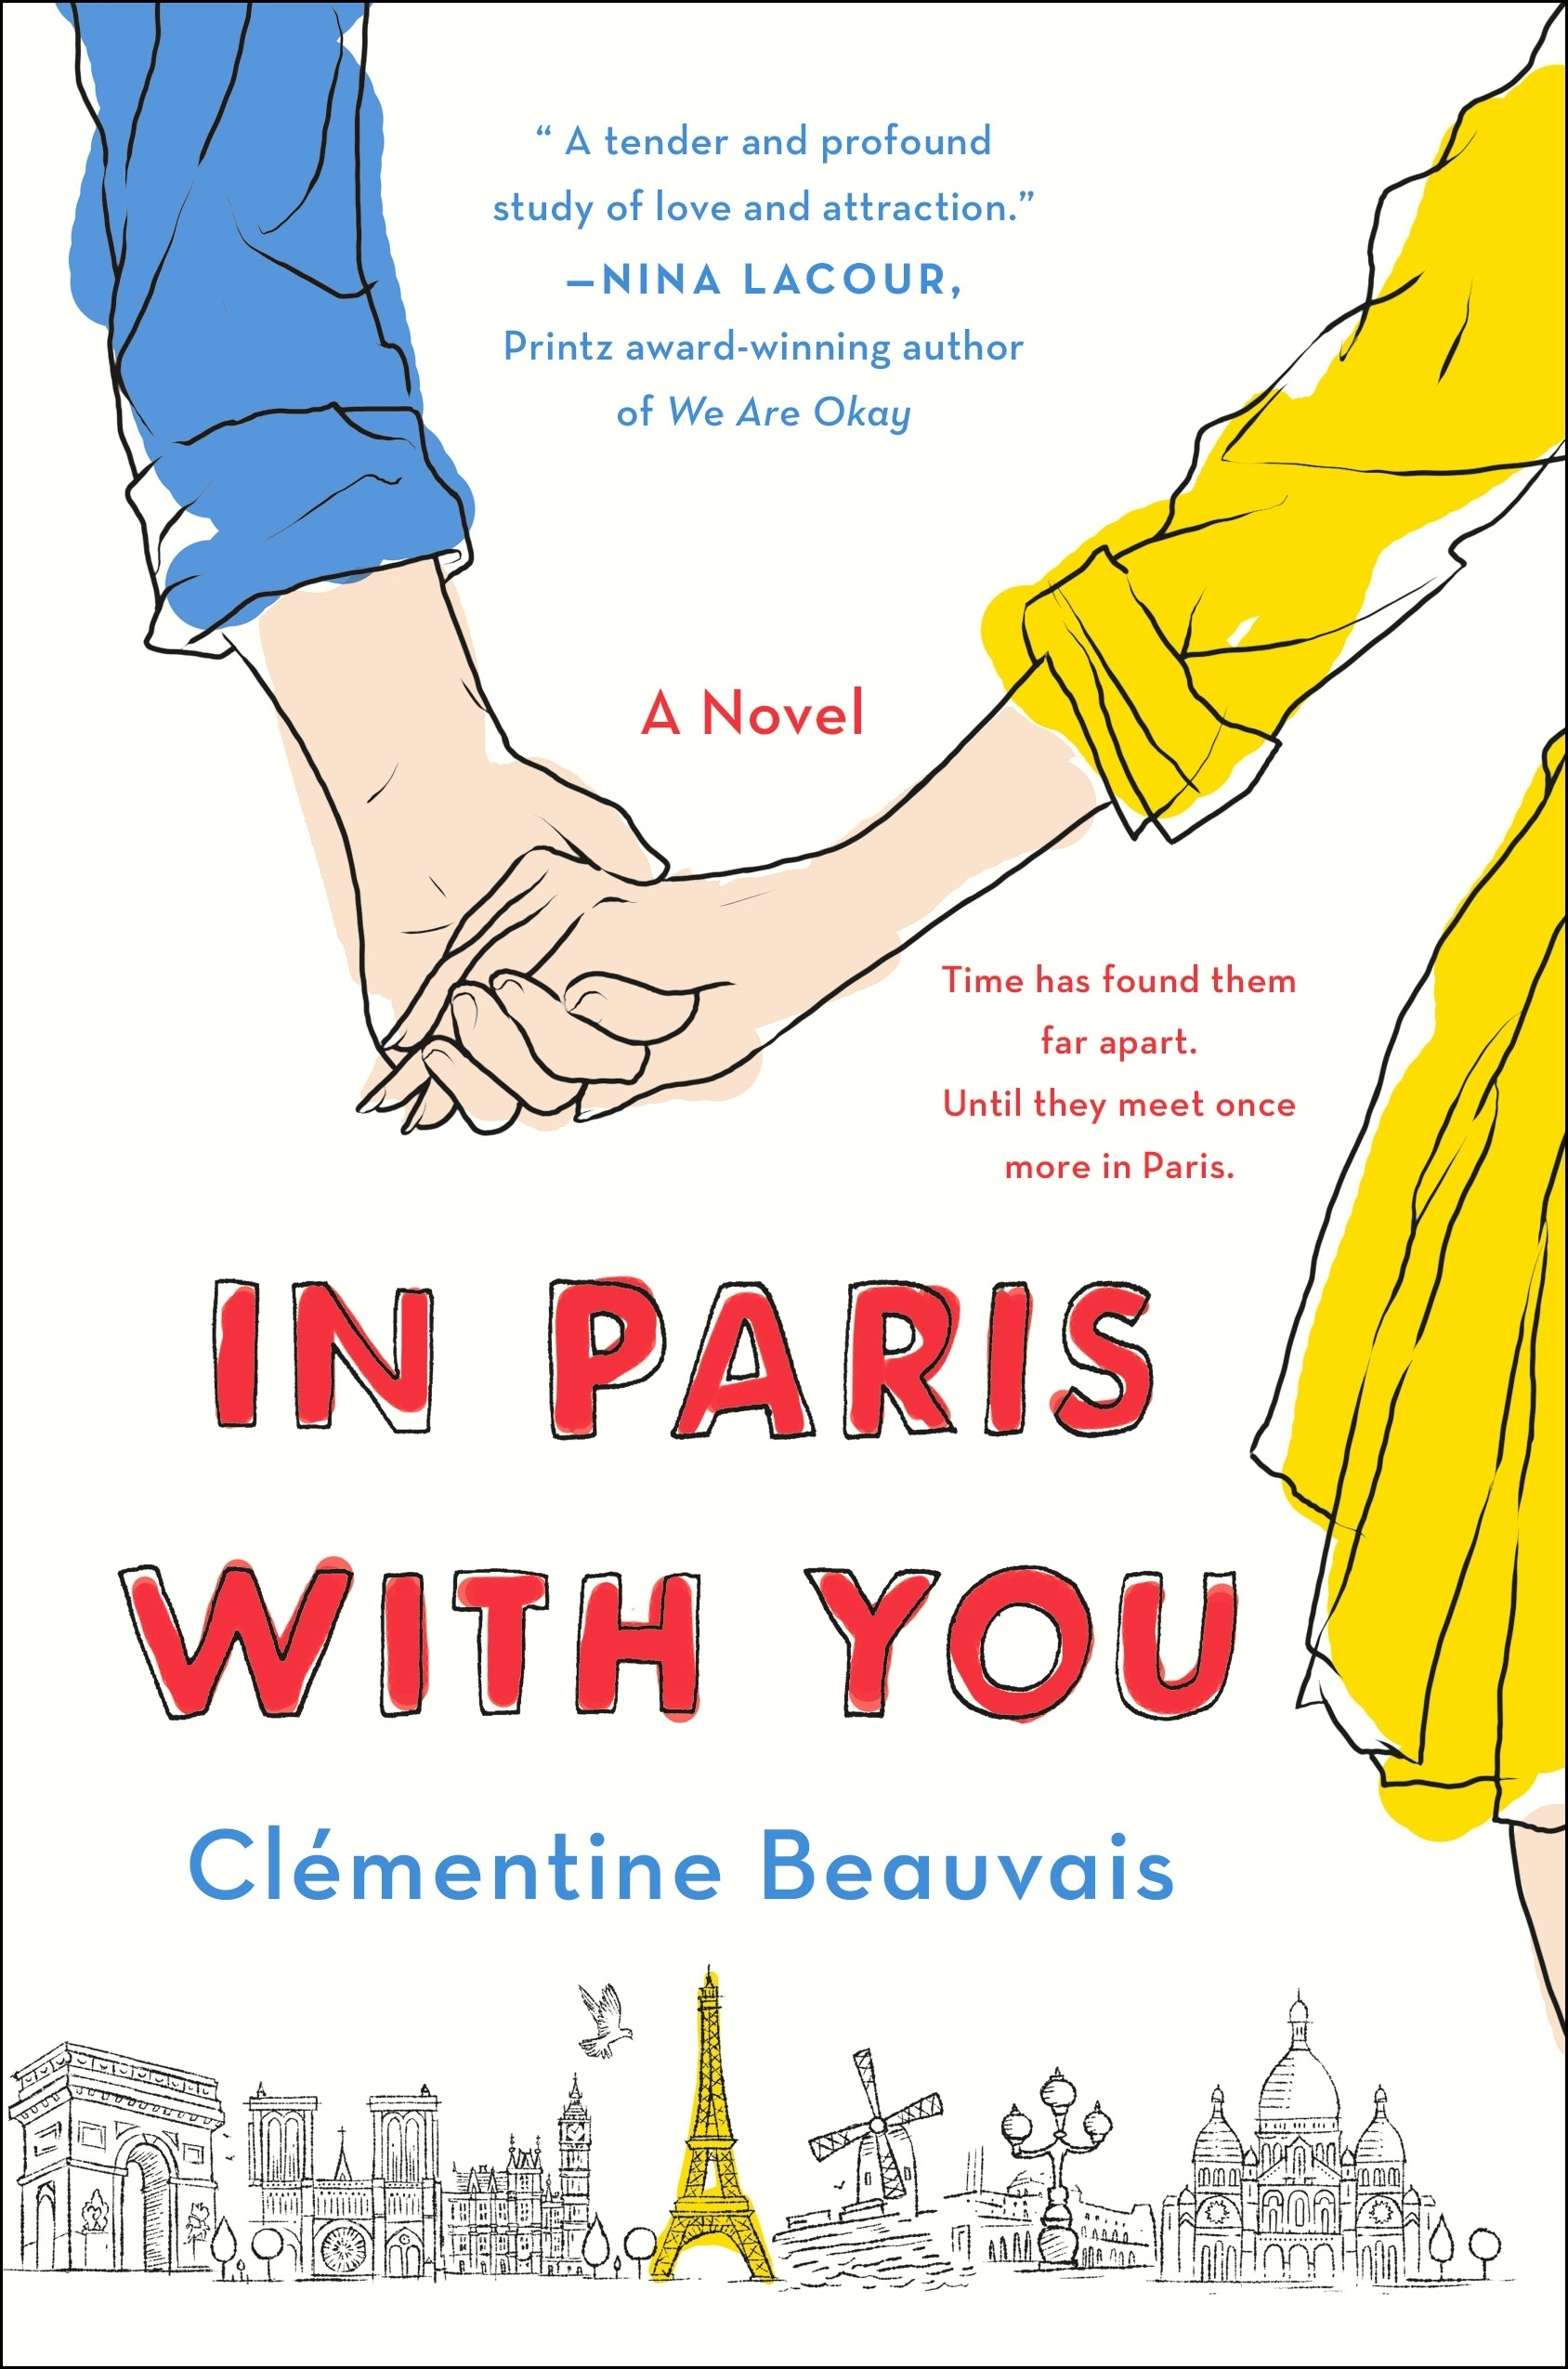 In Paris With You by Clementine Beauvais